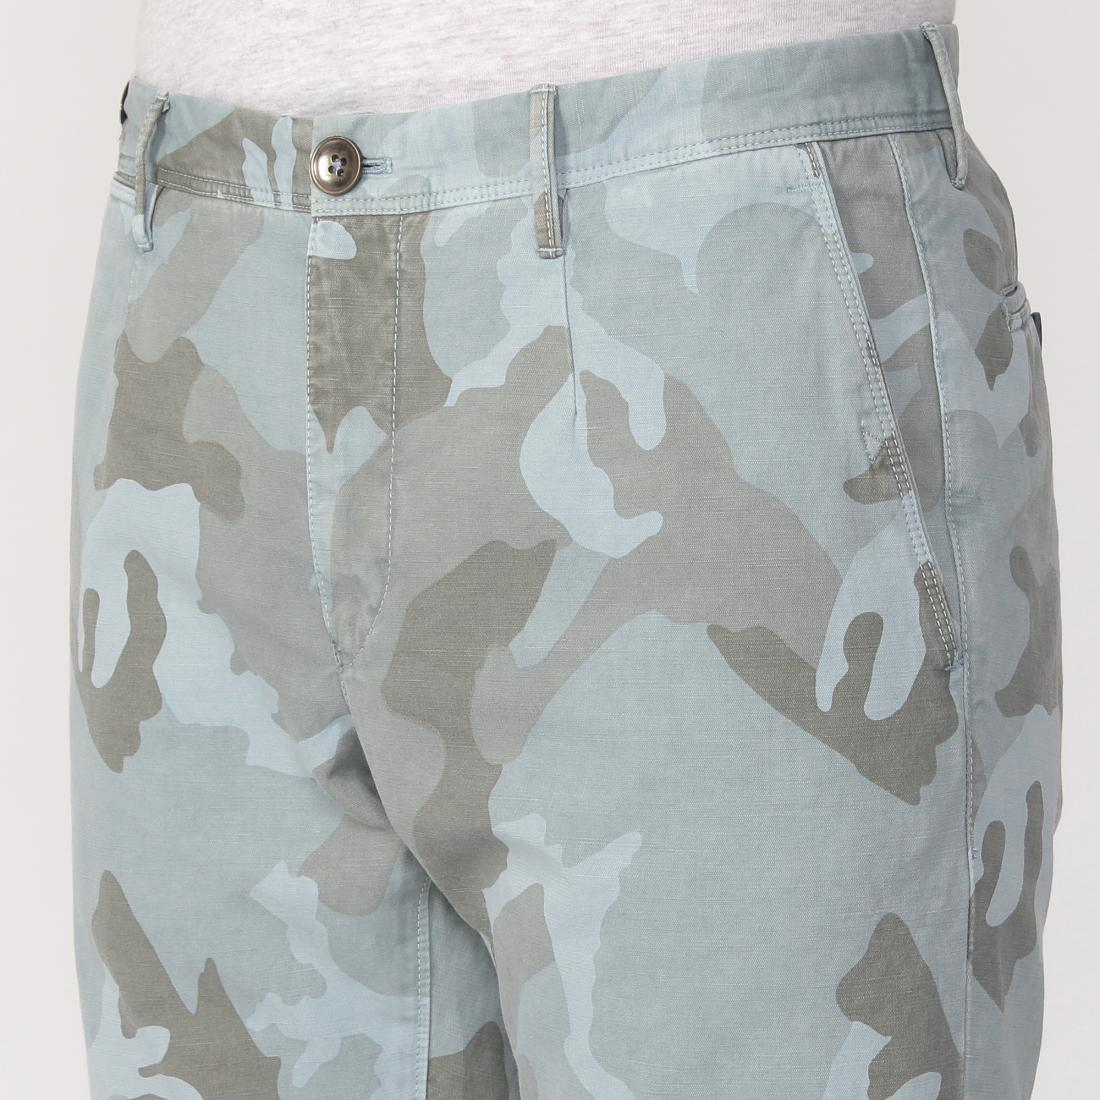 Darwin Cotton Linen Camouflage: Blue